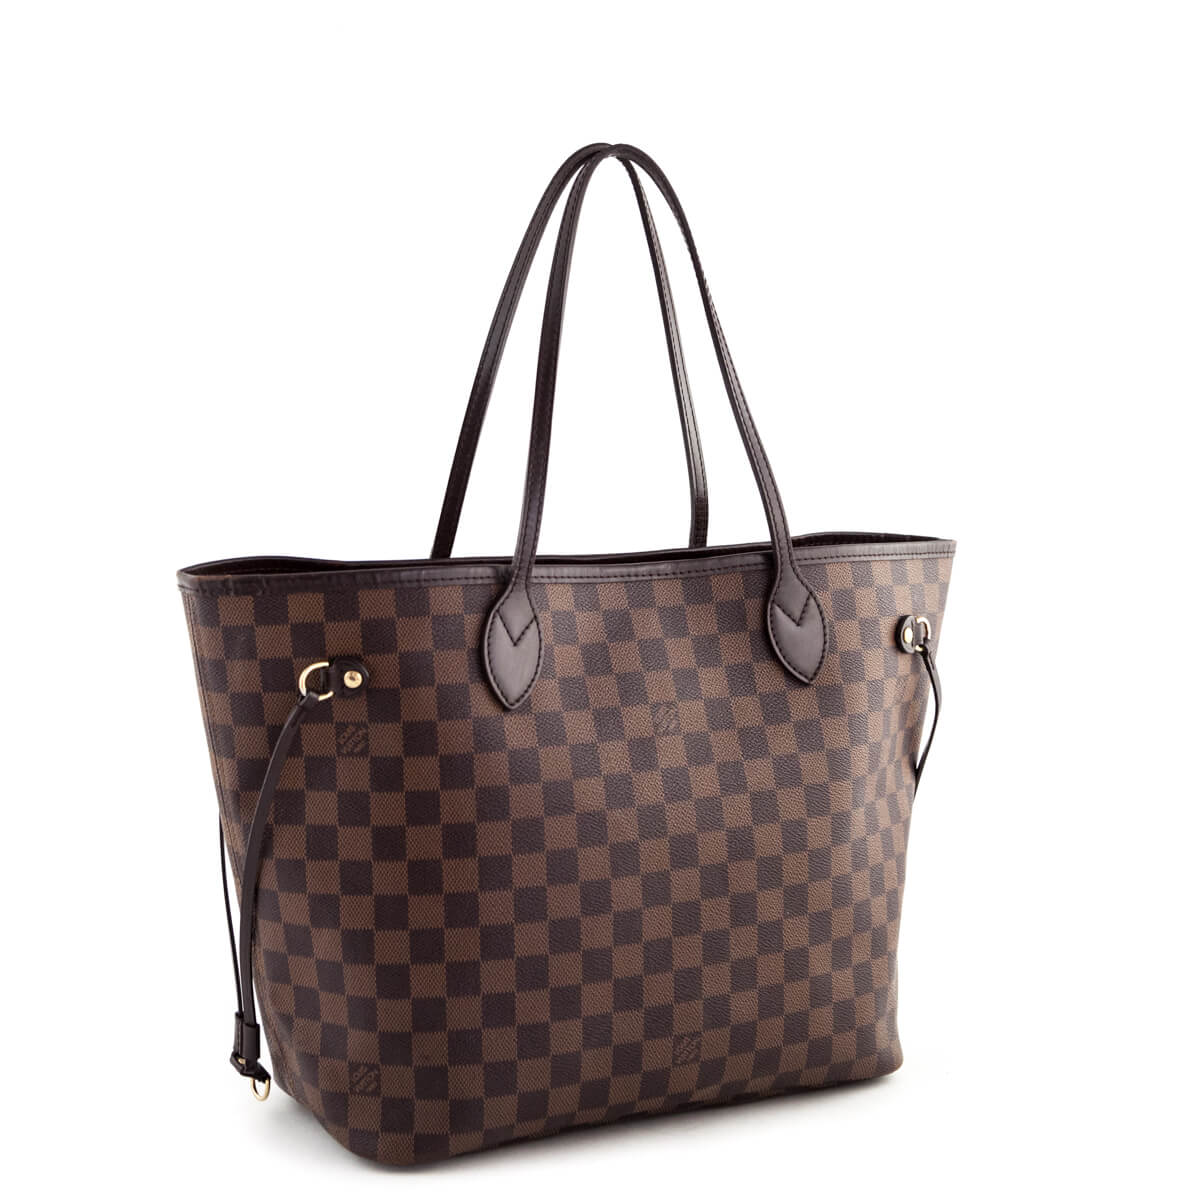 03c011fe78ea ... Louis Vuitton Damier Ebene Neverfull MM - LOVE that BAG - Preowned  Authentic Designer Handbags ...